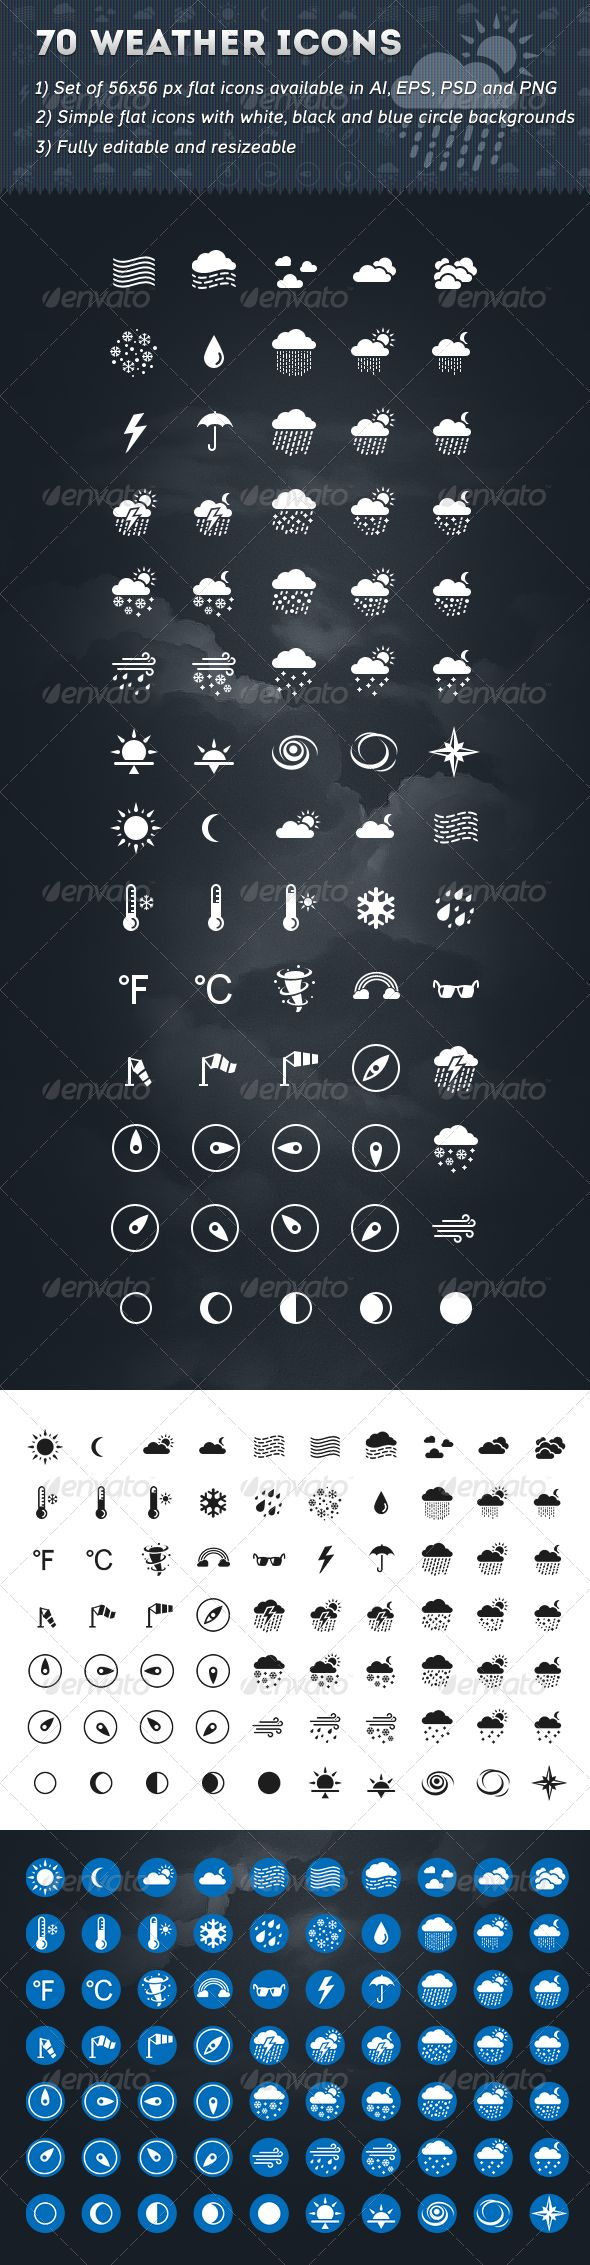 70 Weather Icons | Buy and Download: http://graphicriver.net/item/70-weather-icons/6509981?WT.ac=category_thumb&WT.z_author=valery_medved&ref=ksioks